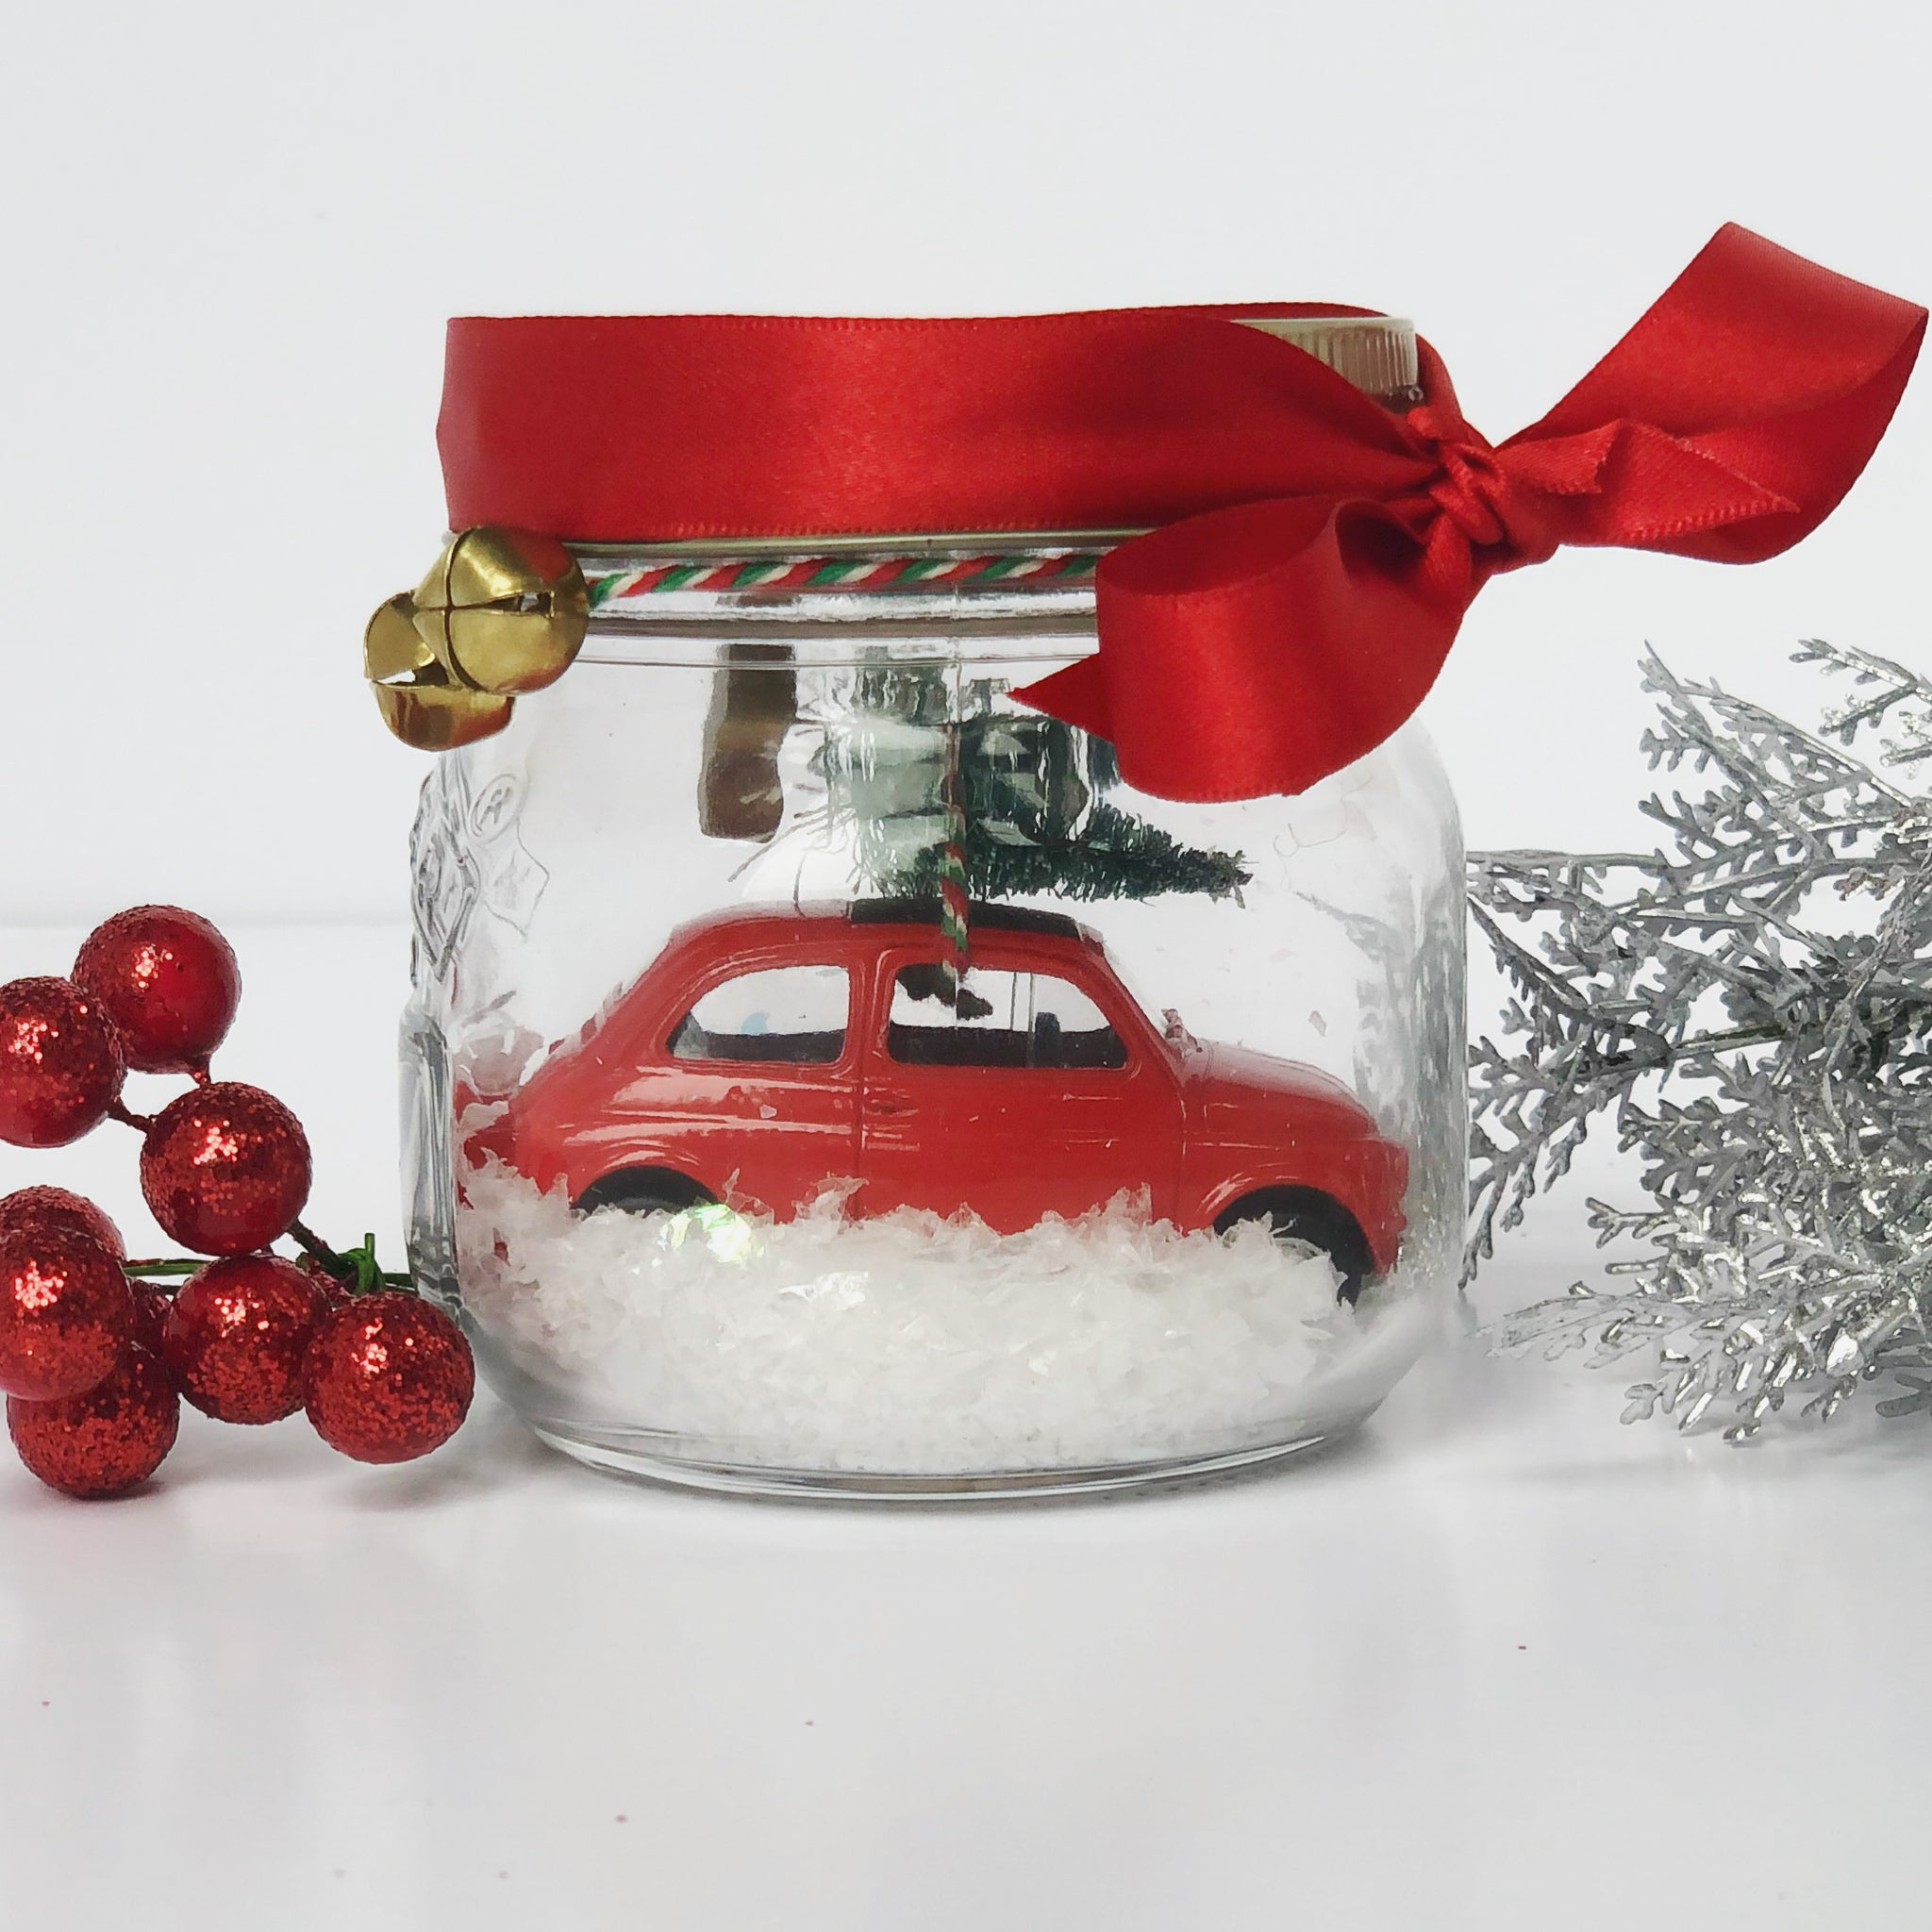 Christmas Car in a jar, Red car in the snow ❄️